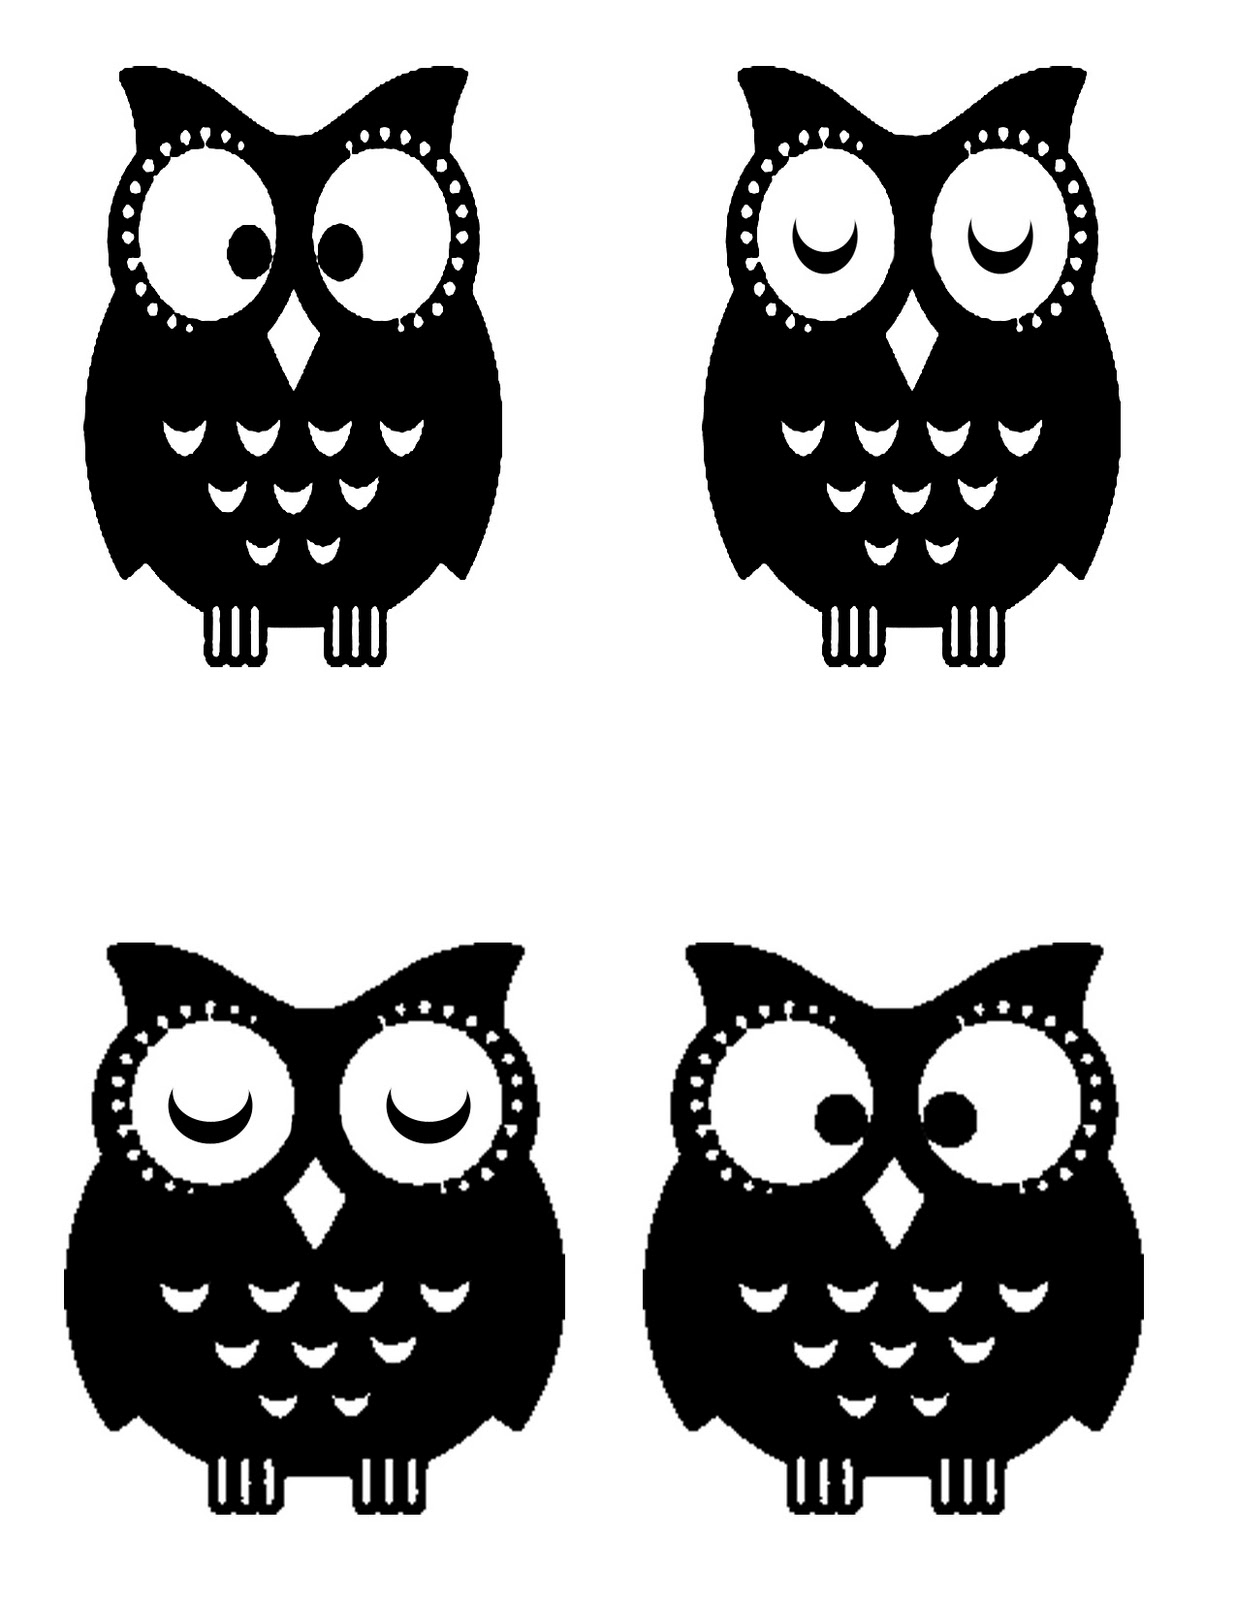 Printable owl stencils - photo#10